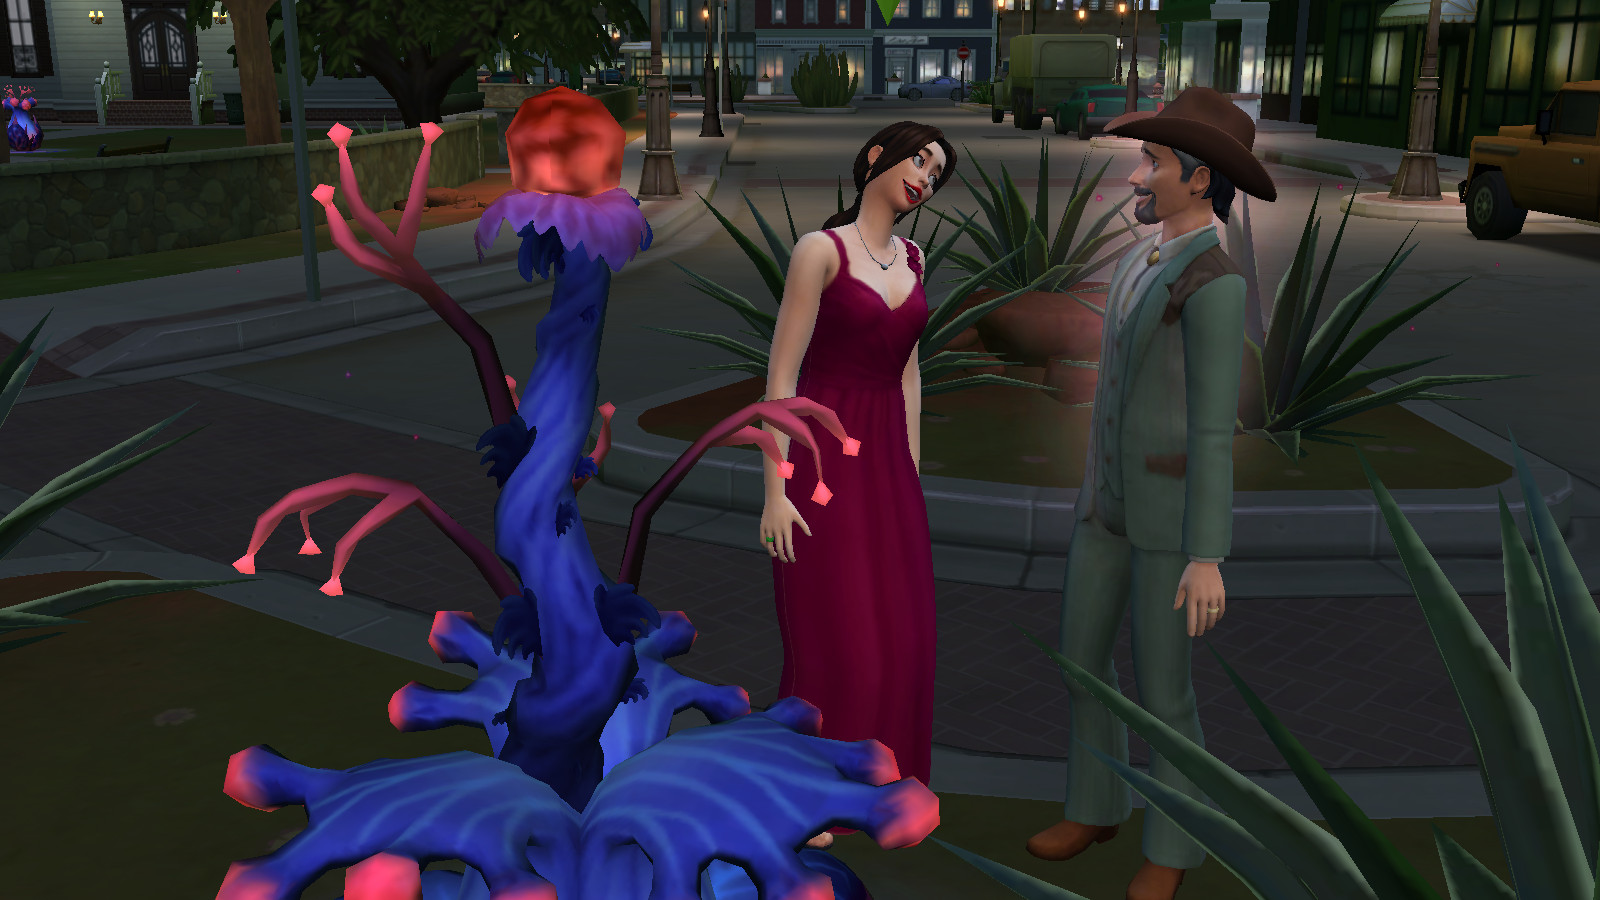 The Sims 4: StrangerVille is rich with potential, but feels empty